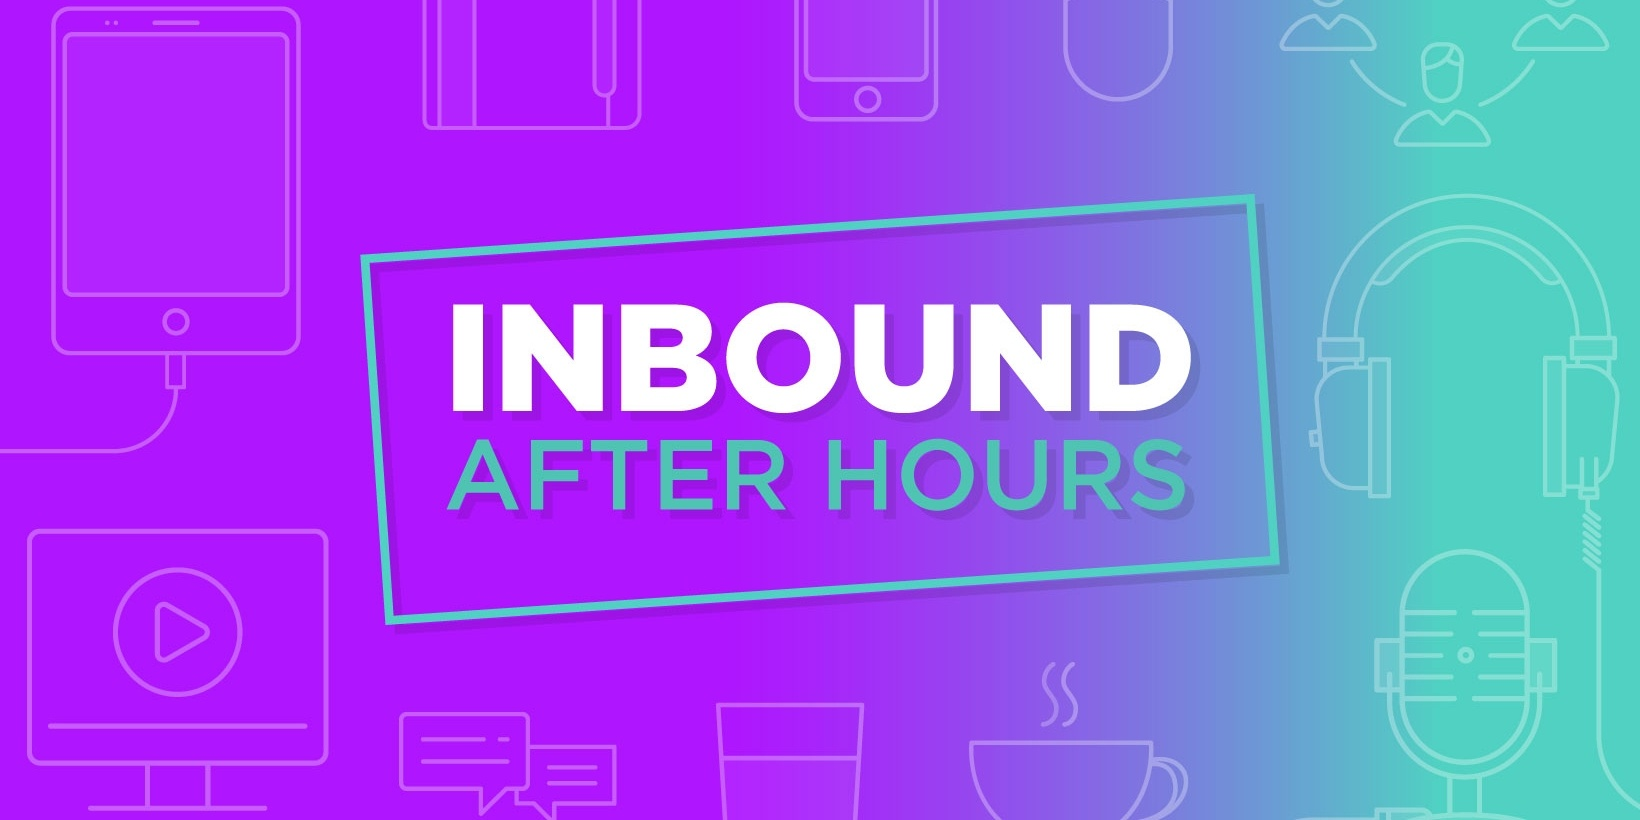 D22-Inbound-After-Hours-Facebook-Banner-3-650108-edited